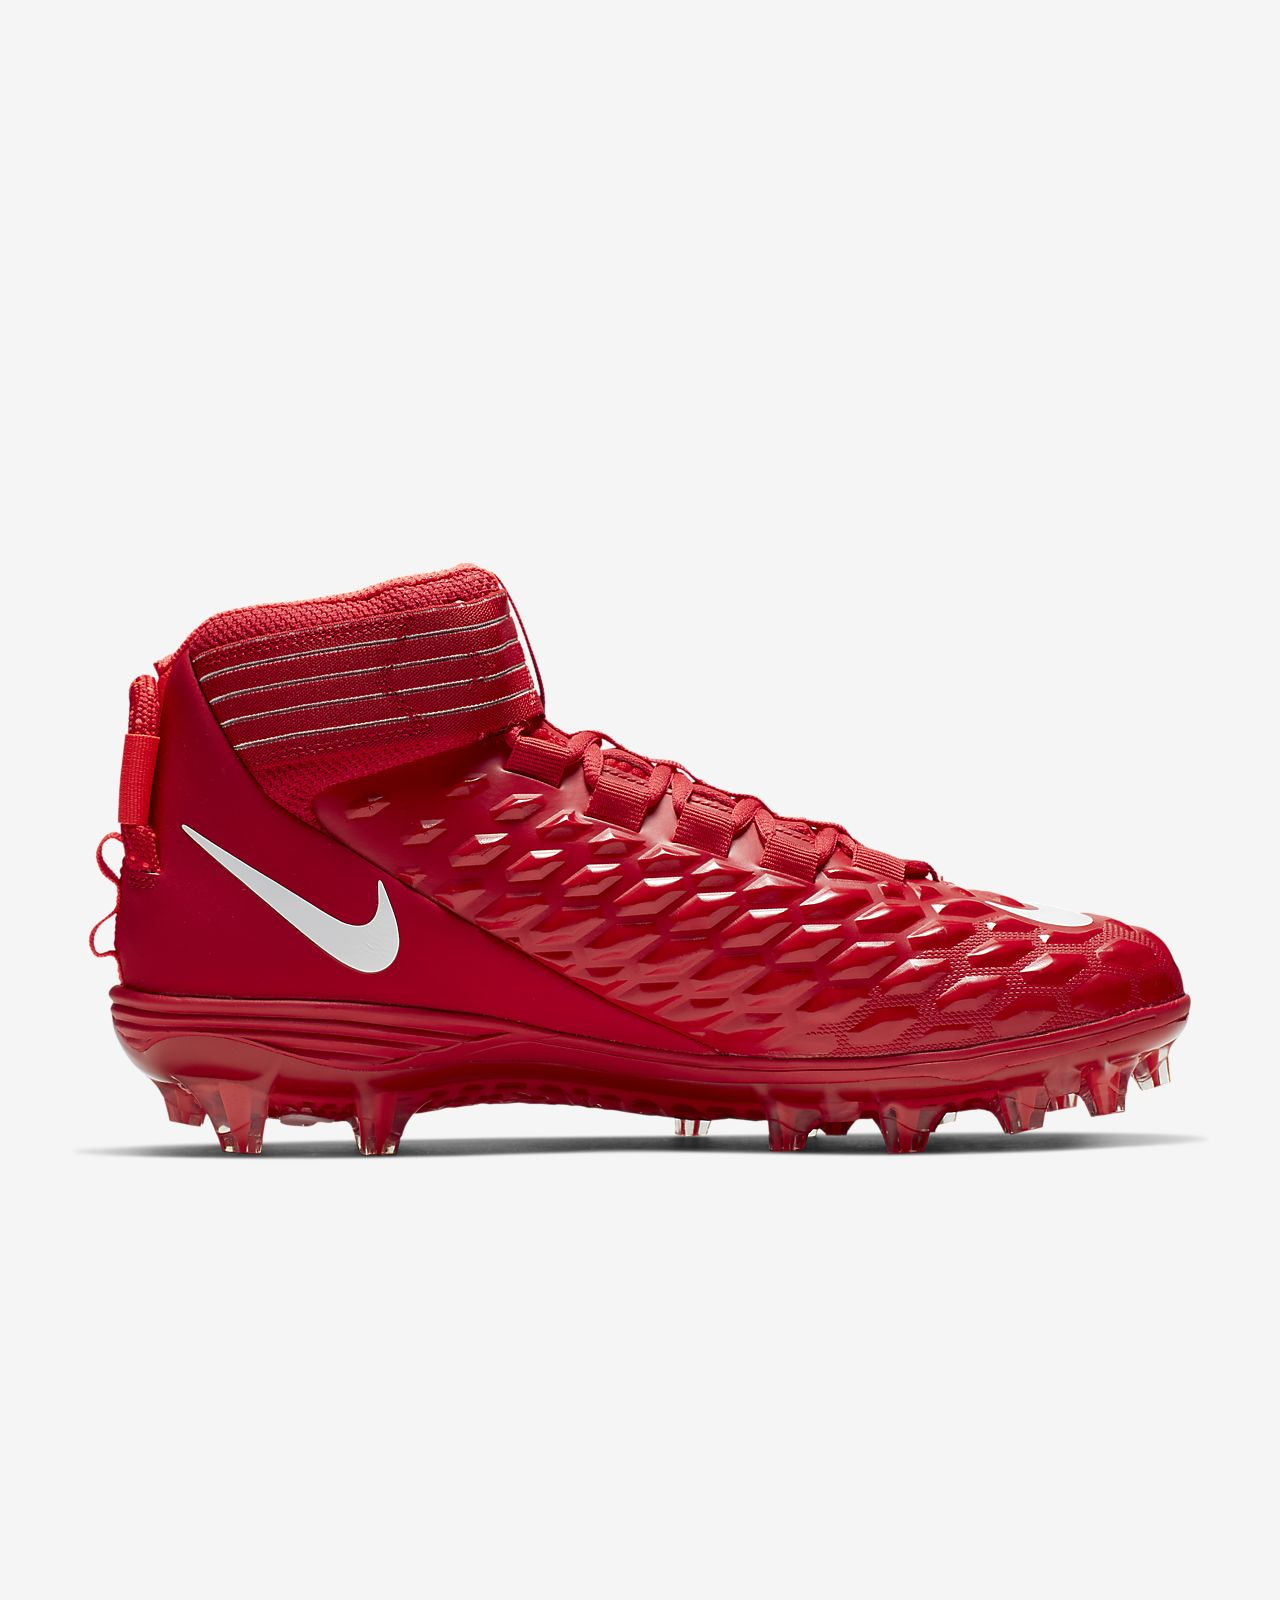 Mens Nike Football Shoes : Browse a wide variety of running